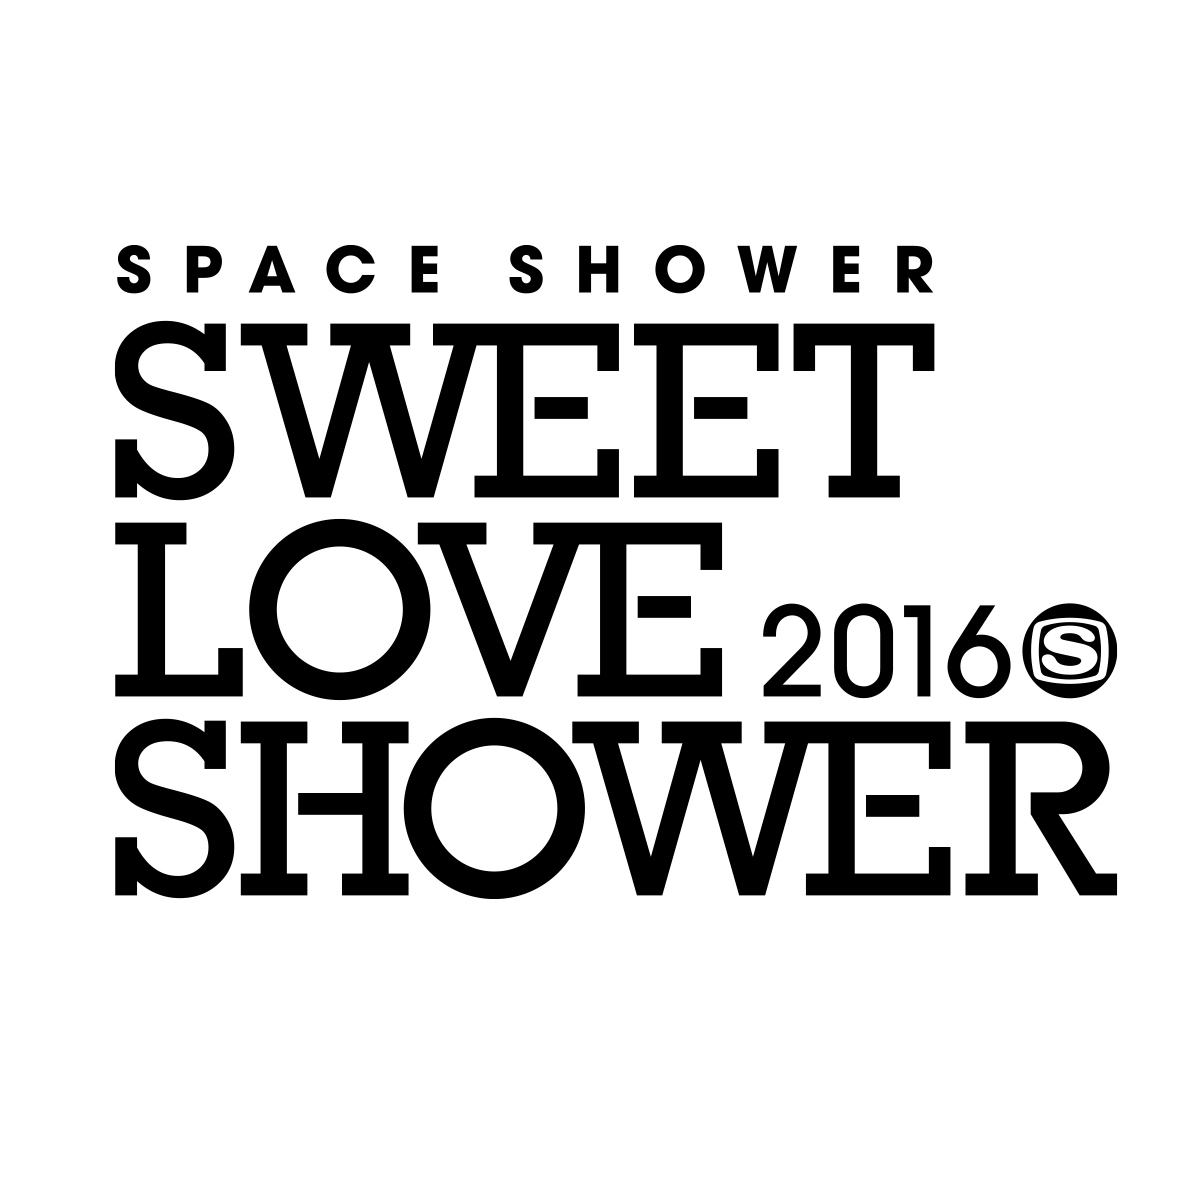 SWEET LOVE SHOWER 2016